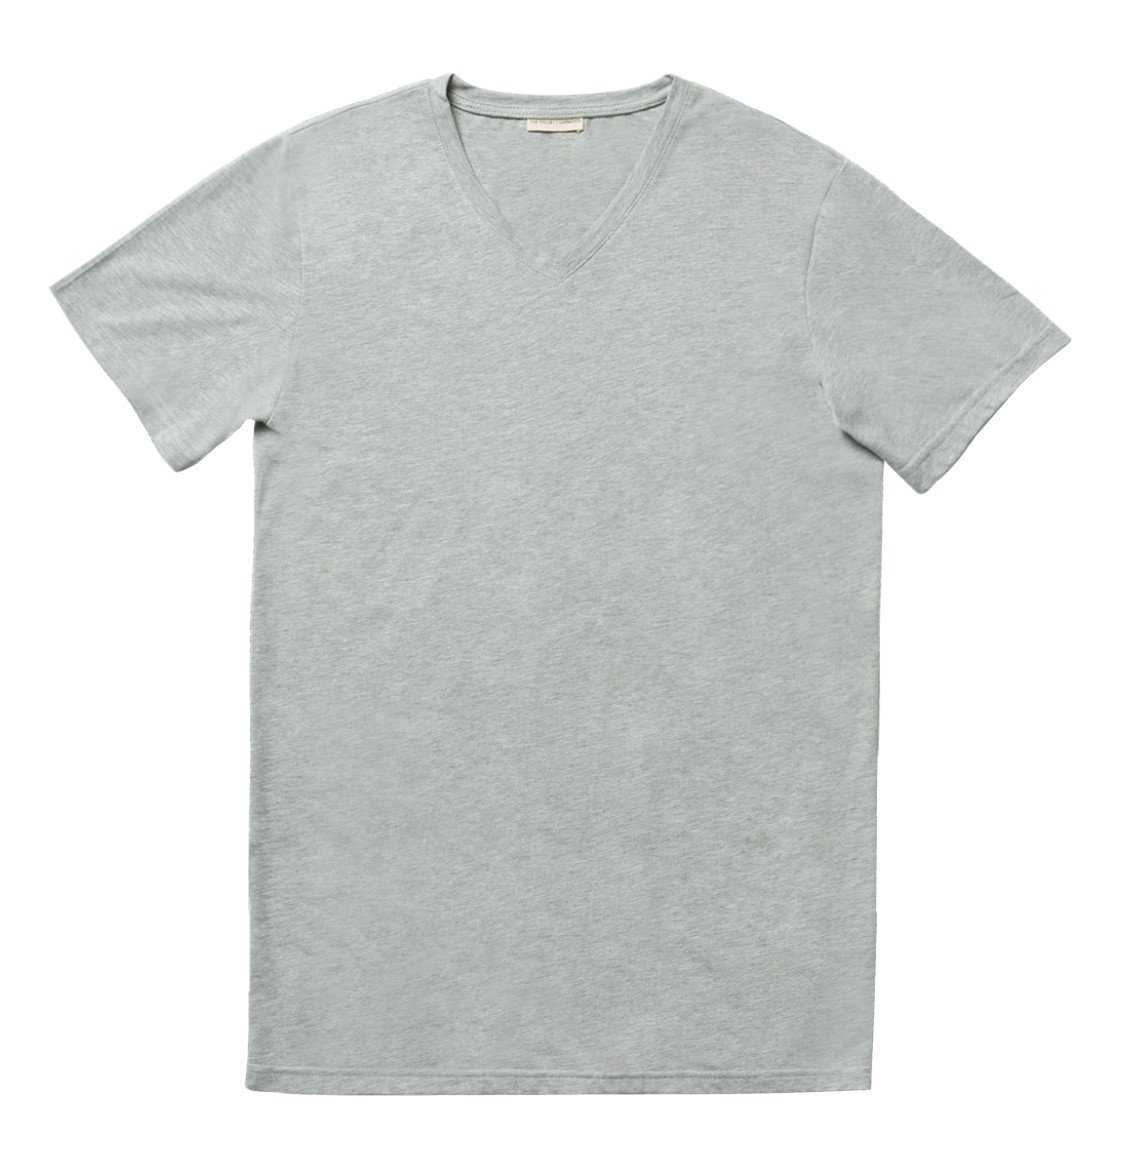 The Project Garments Regular Fit Organic Cotton V-neck T-shirt Melange Grey